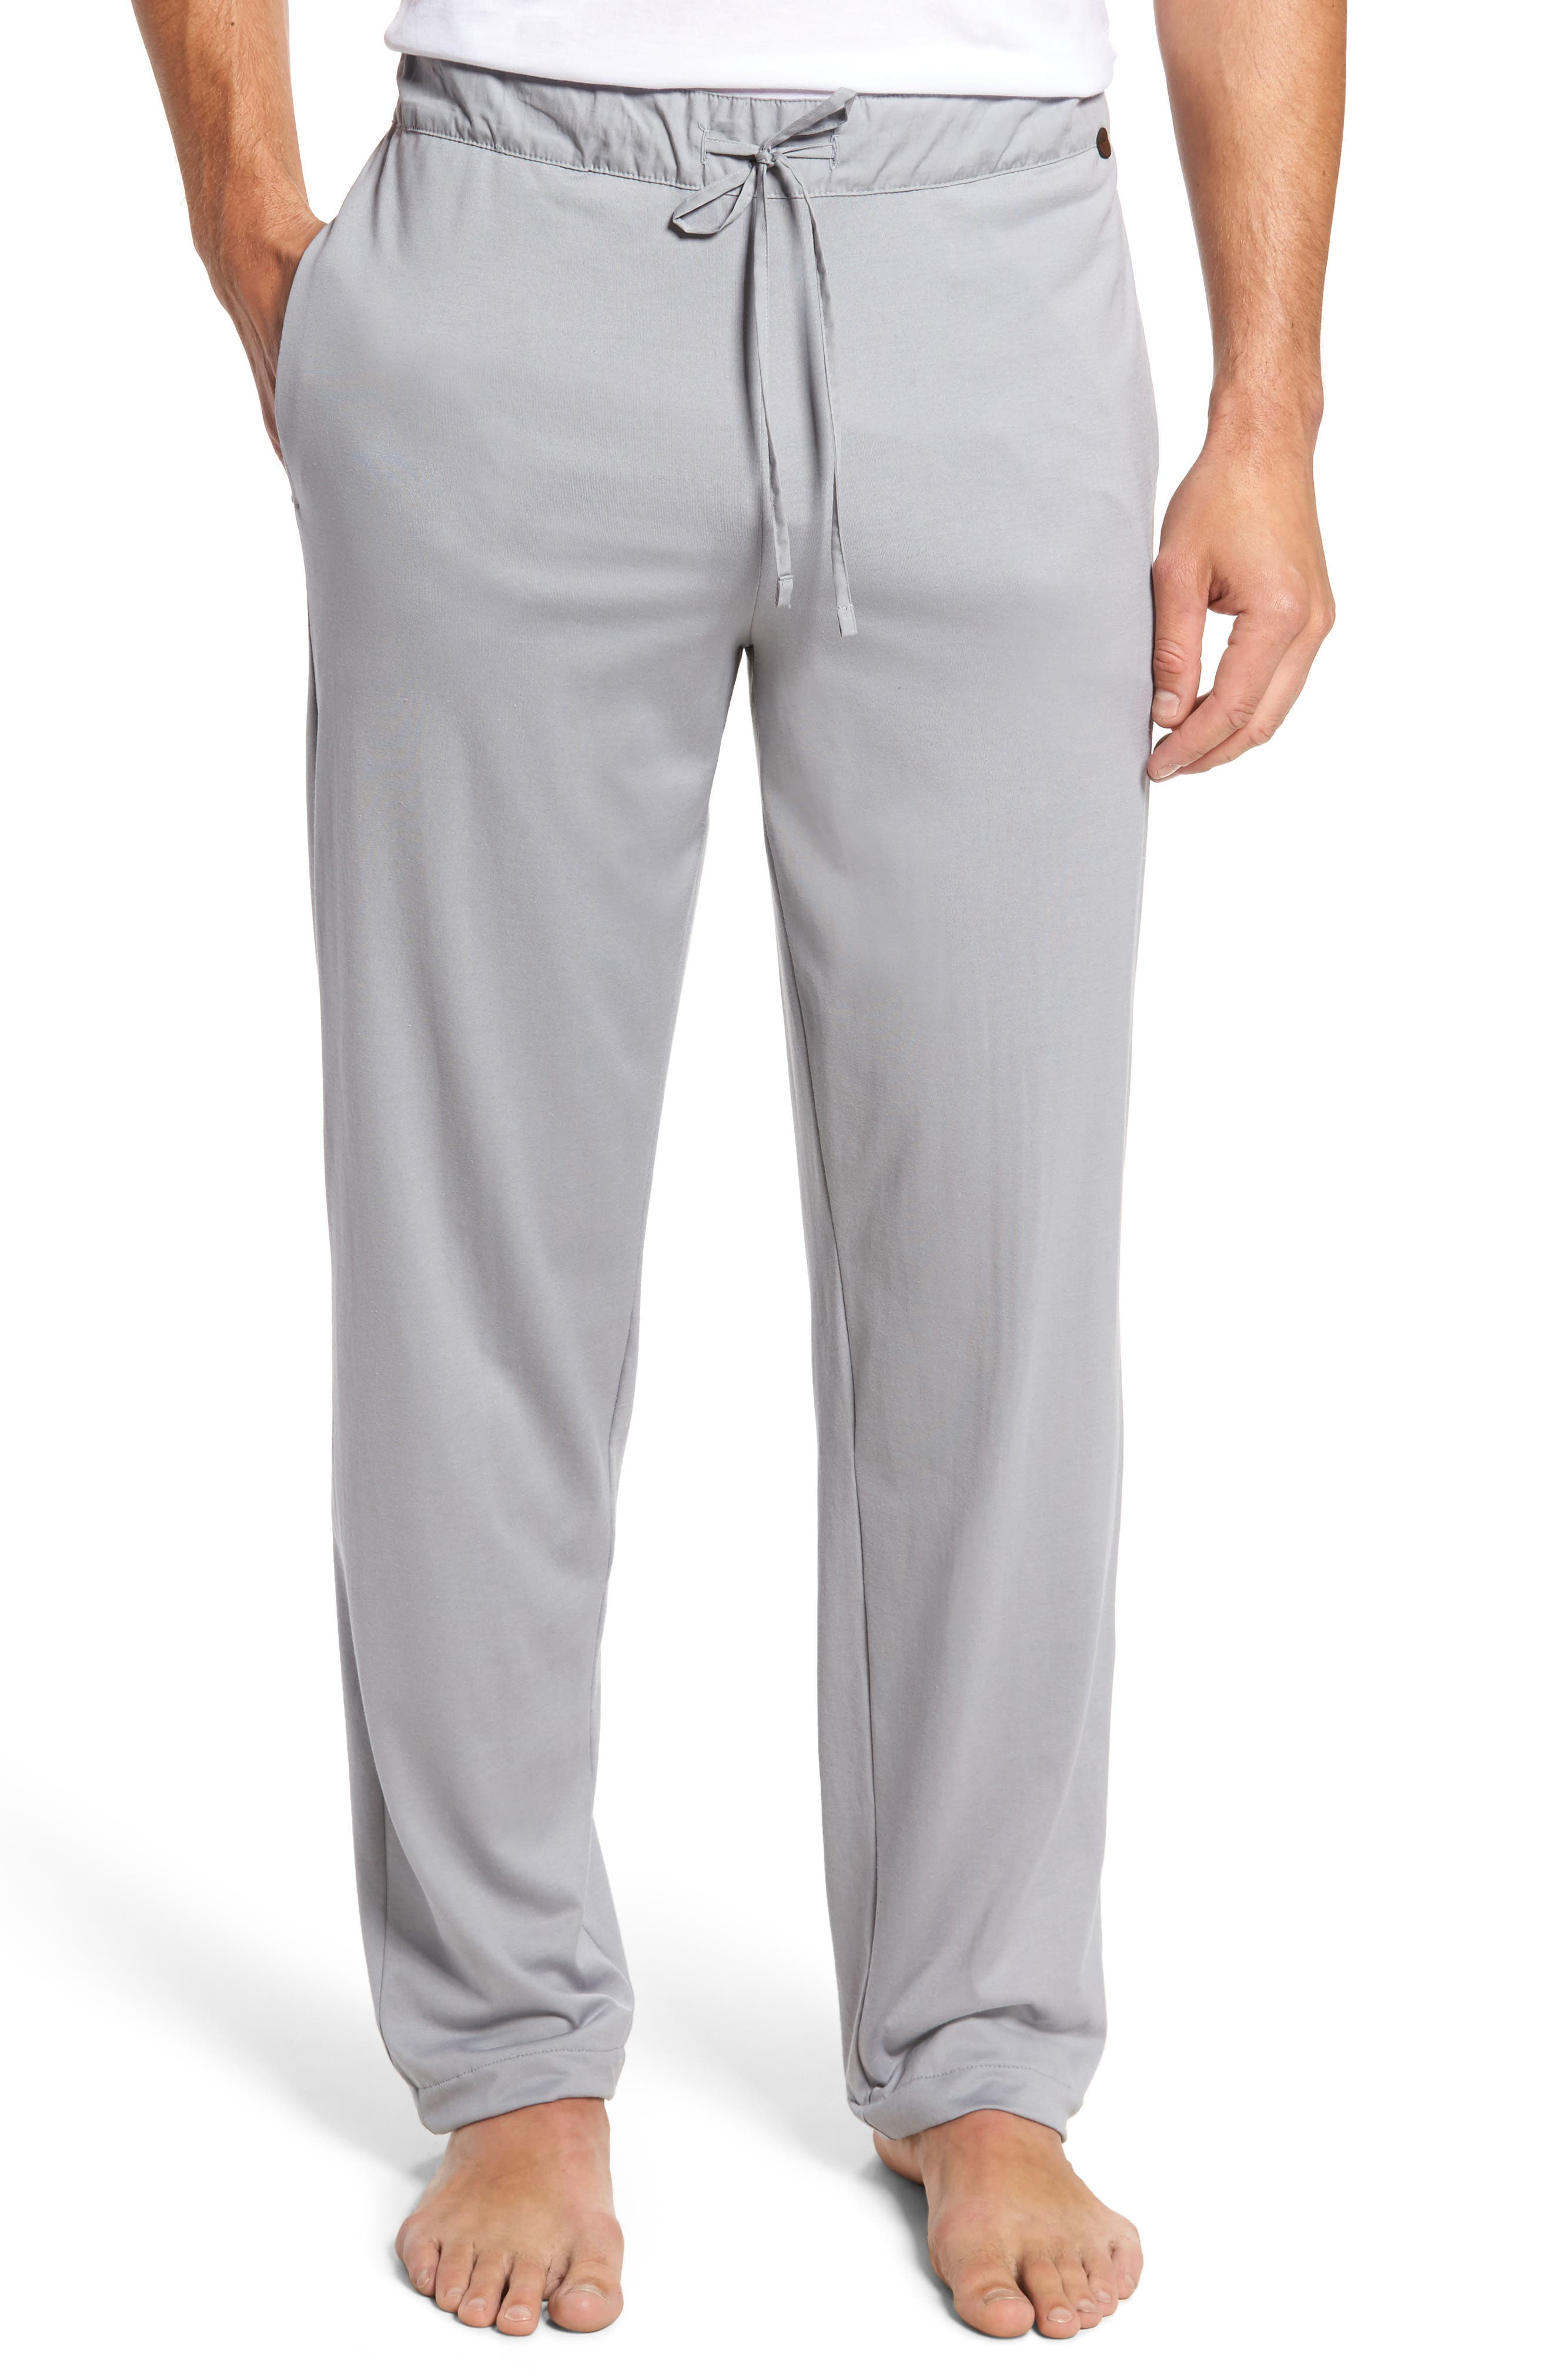 Night & Day Knit Lounge Pants,                         Main,                         color, Mineral